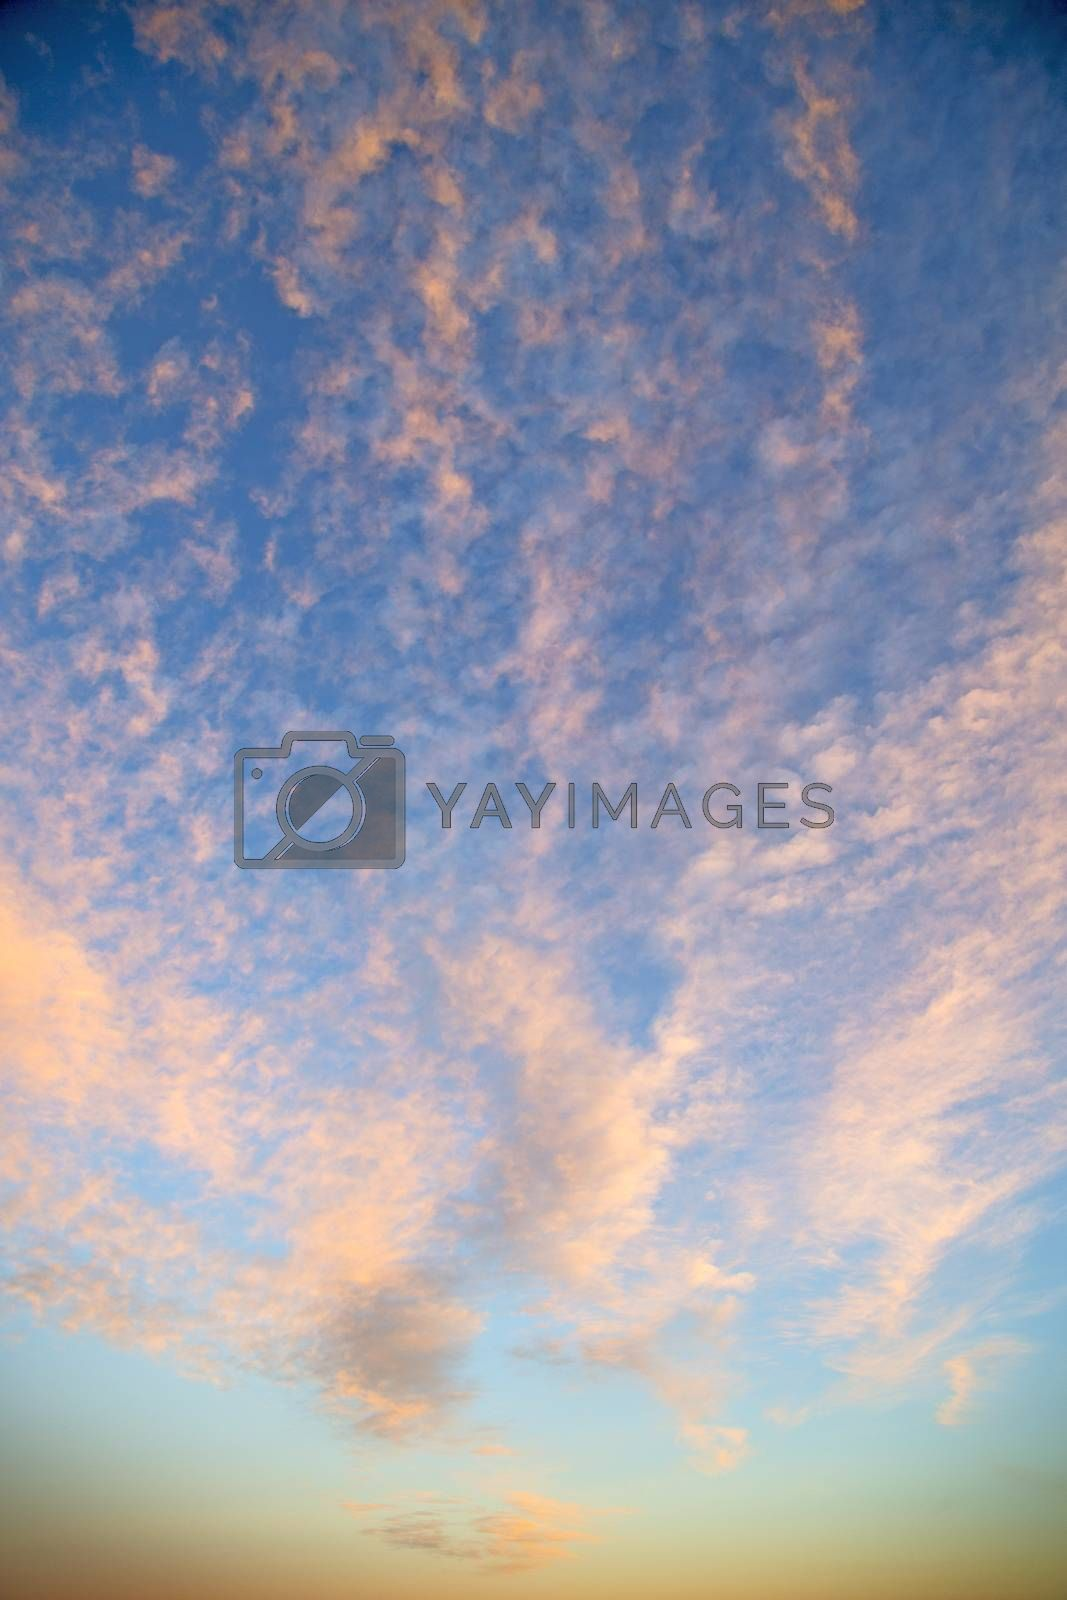 sunrise in the colored sky white soft clouds and abstract   by lkpro